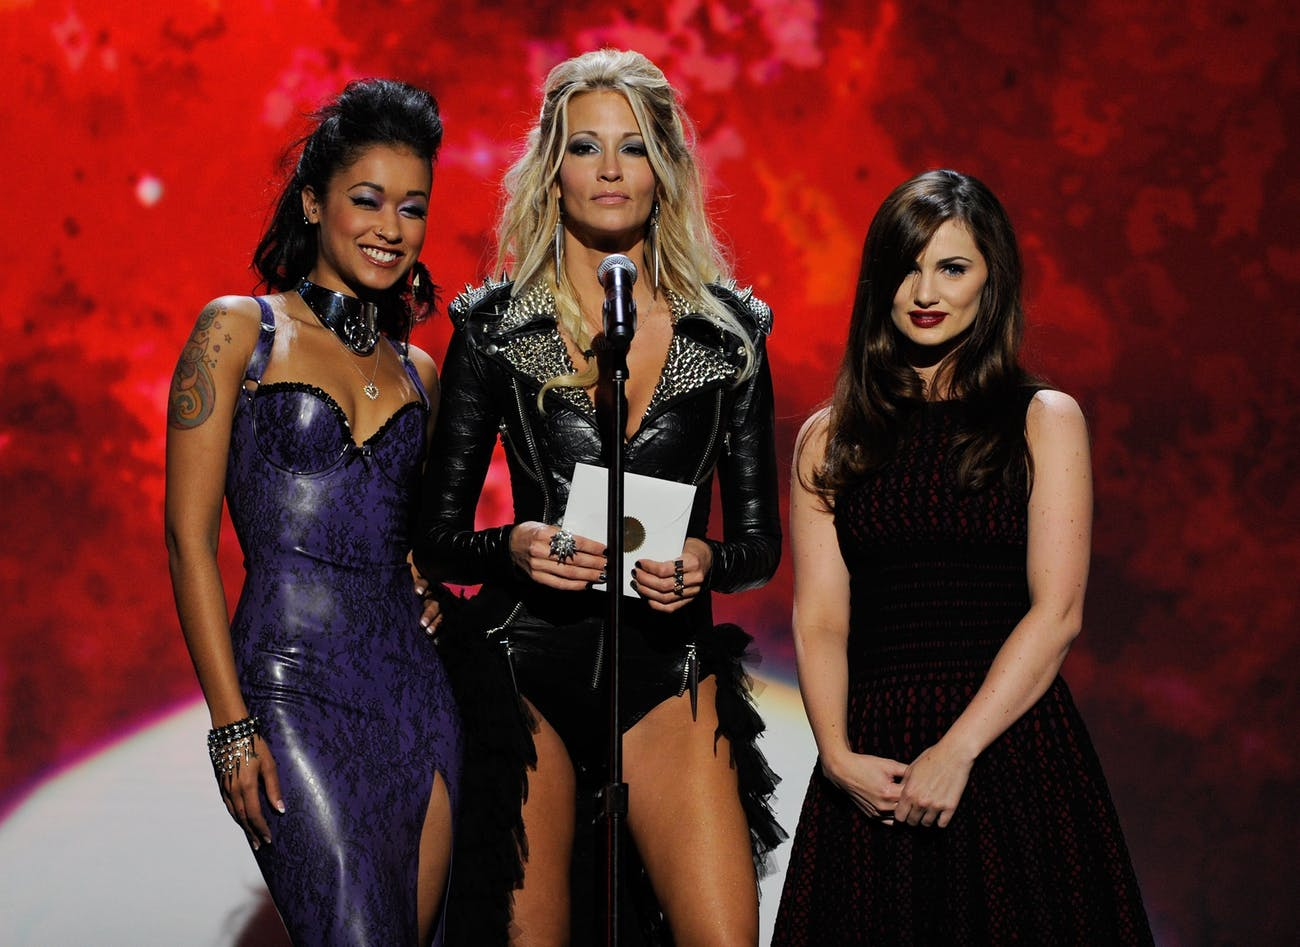 LAS VEGAS, NV - JANUARY 21: (L-R) Adult film actresses Skin Diamond, jessica drake and Lily Carter present an award during the 29th annual Adult Video News Awards Show at The Joint inside the Hard Rock Hotel & Casino January 21, 2012 in Las Vegas, Nevada. (Photo by Ethan Miller/Getty Images)